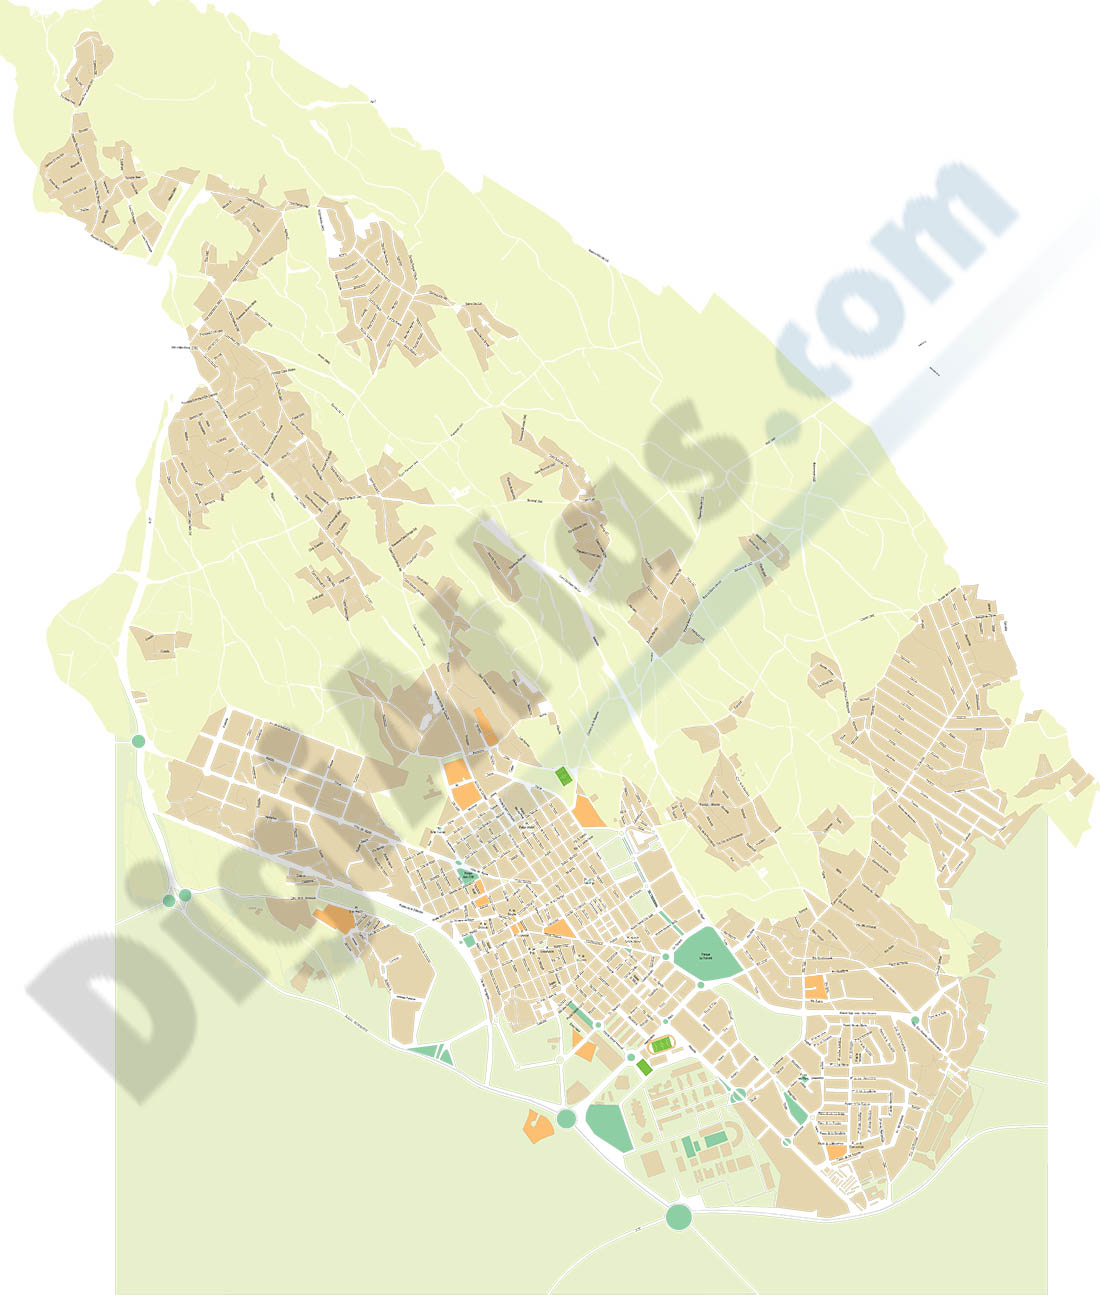 San Vicente del Raspeig (Alicante) - city map